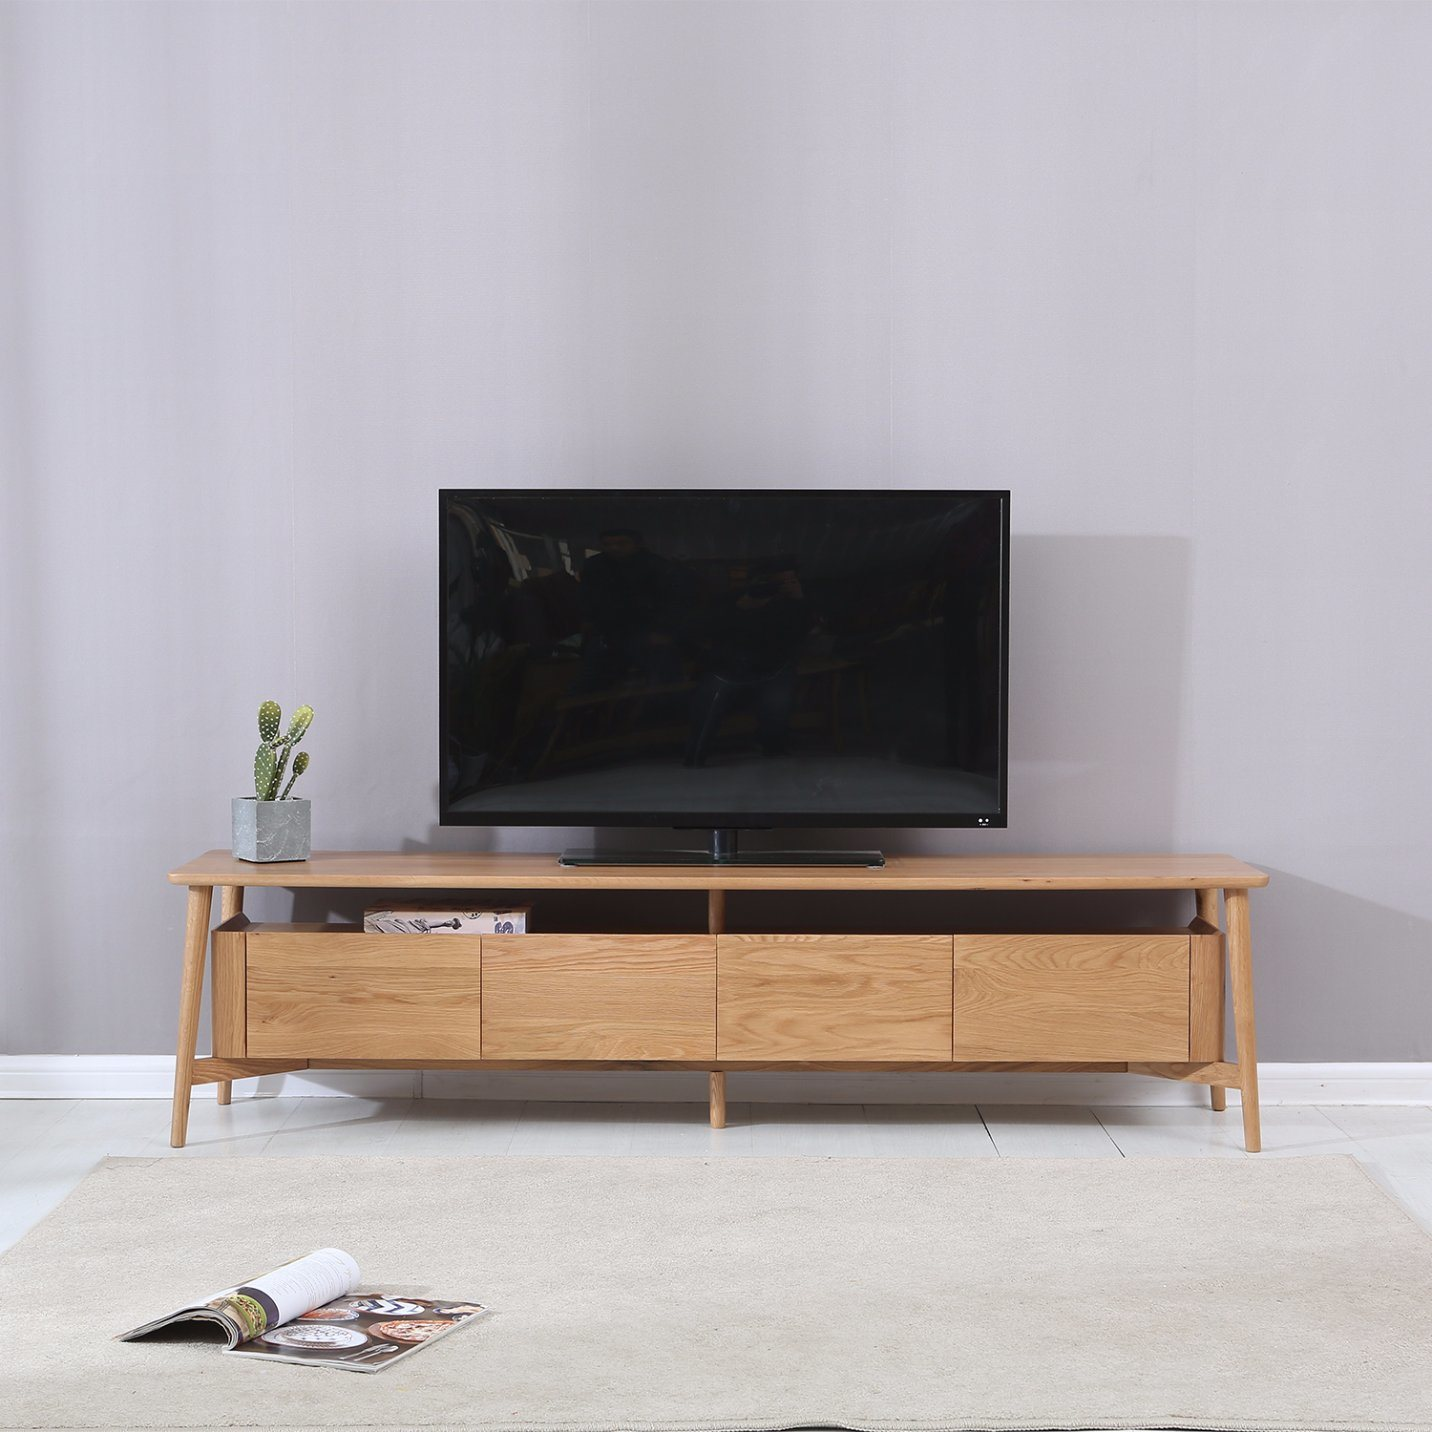 Cabinet Oak Furniture China Wood Tv Cabinet Wood Tv Cabinet Manufacturers Suppliers Made In China